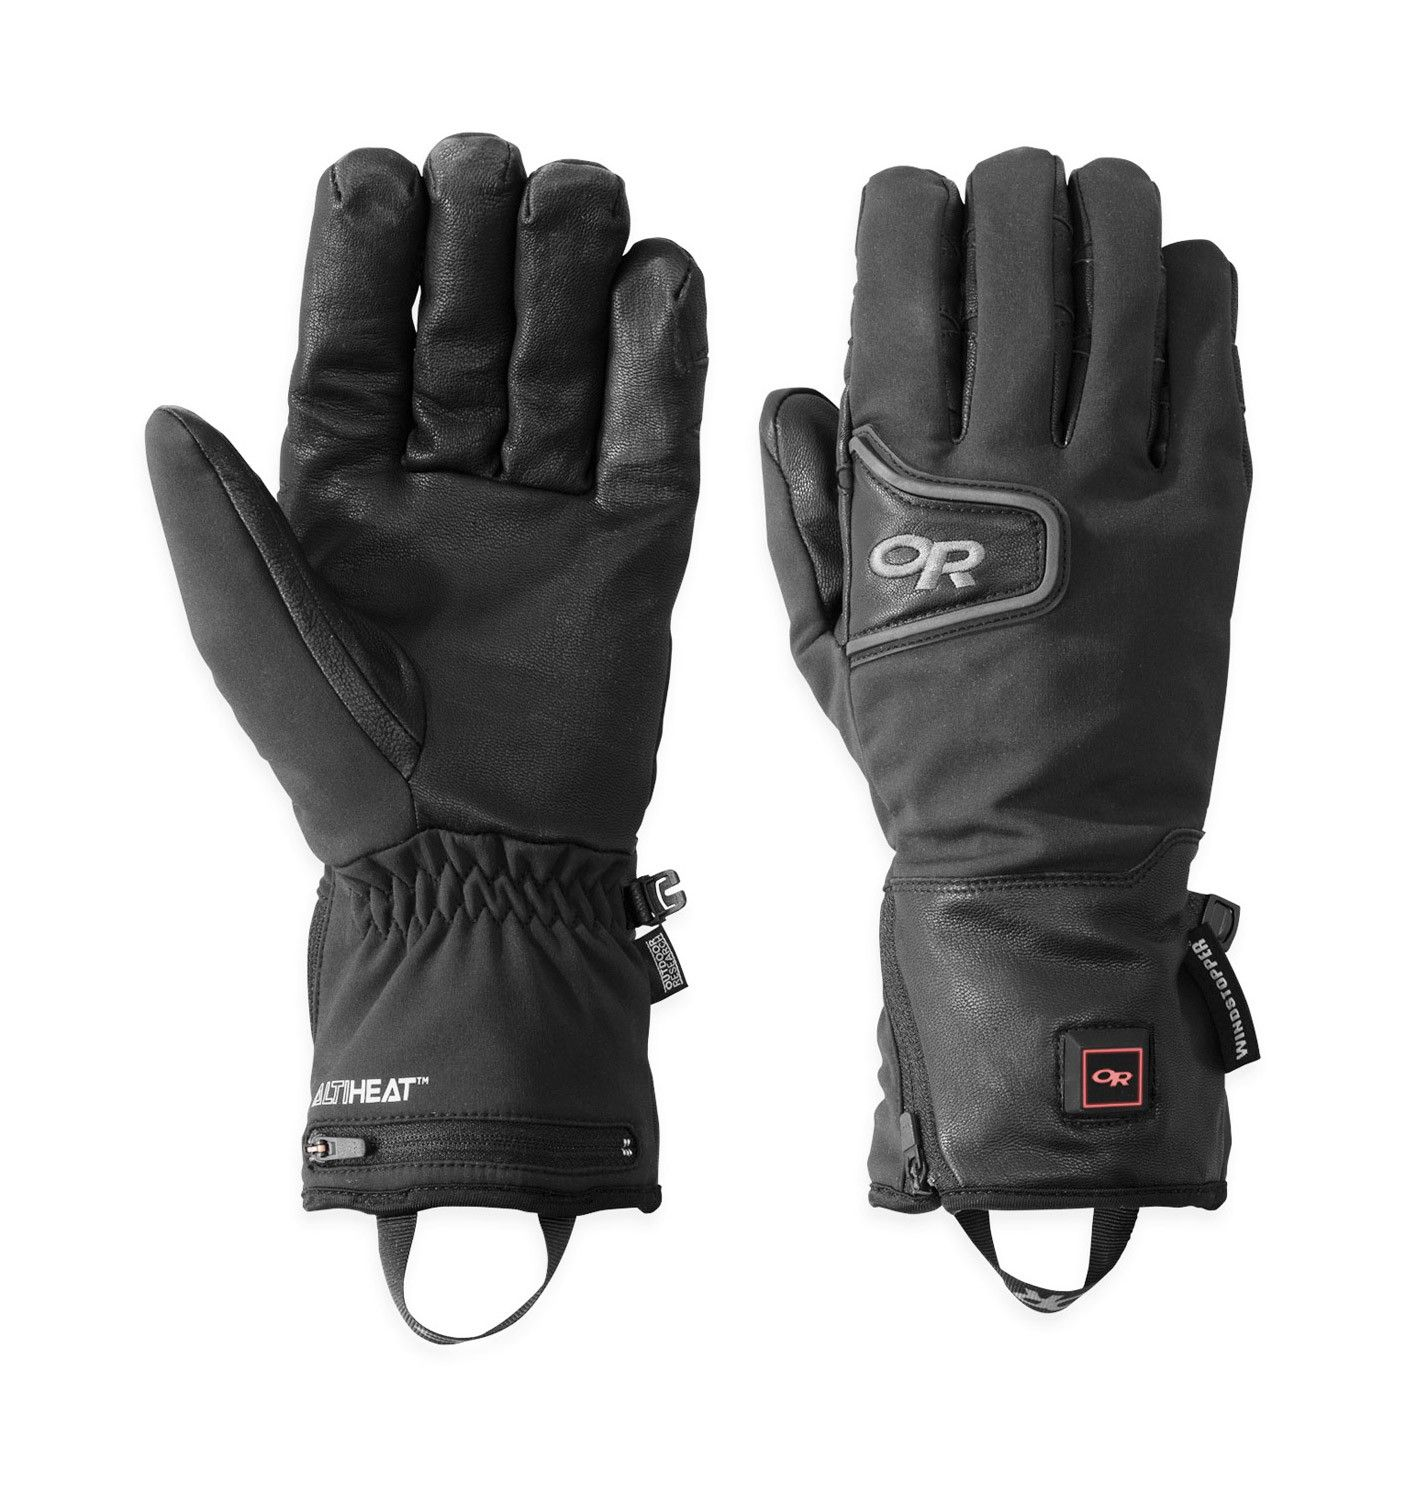 Stormtracker Heated Gloves™ BUY THESE!!!!!!!!!!! 100